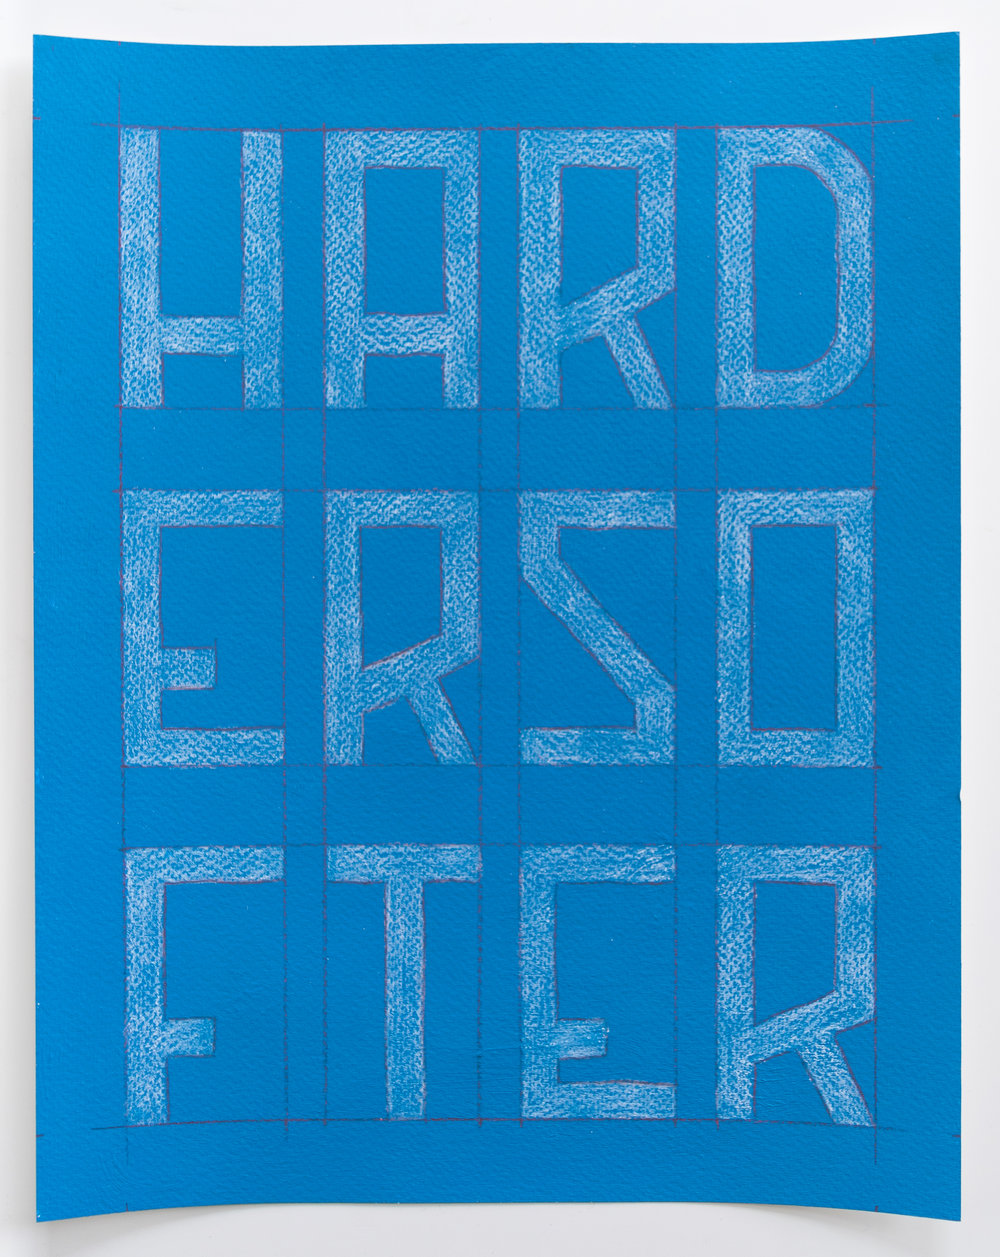 Harder Softer  Enamel, colored pencil, watercolor paper  11 x 14 inches  2017